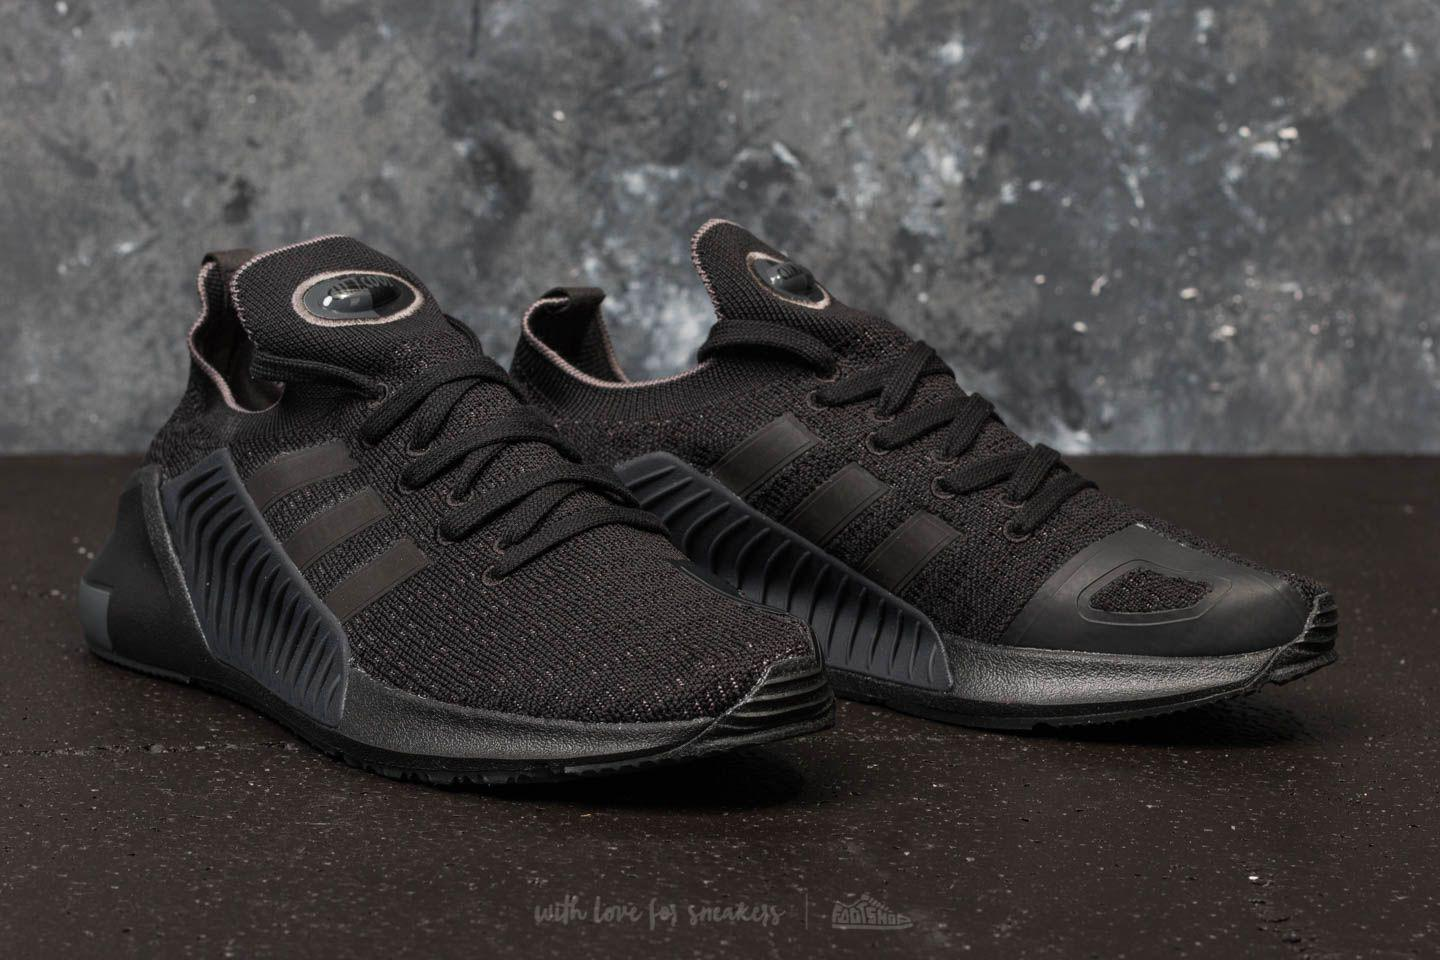 competitive price 700a7 0260a Adidas Originals - Adidas Climacool 0217 Primeknit Core Black Core Black  Grey. View fullscreen